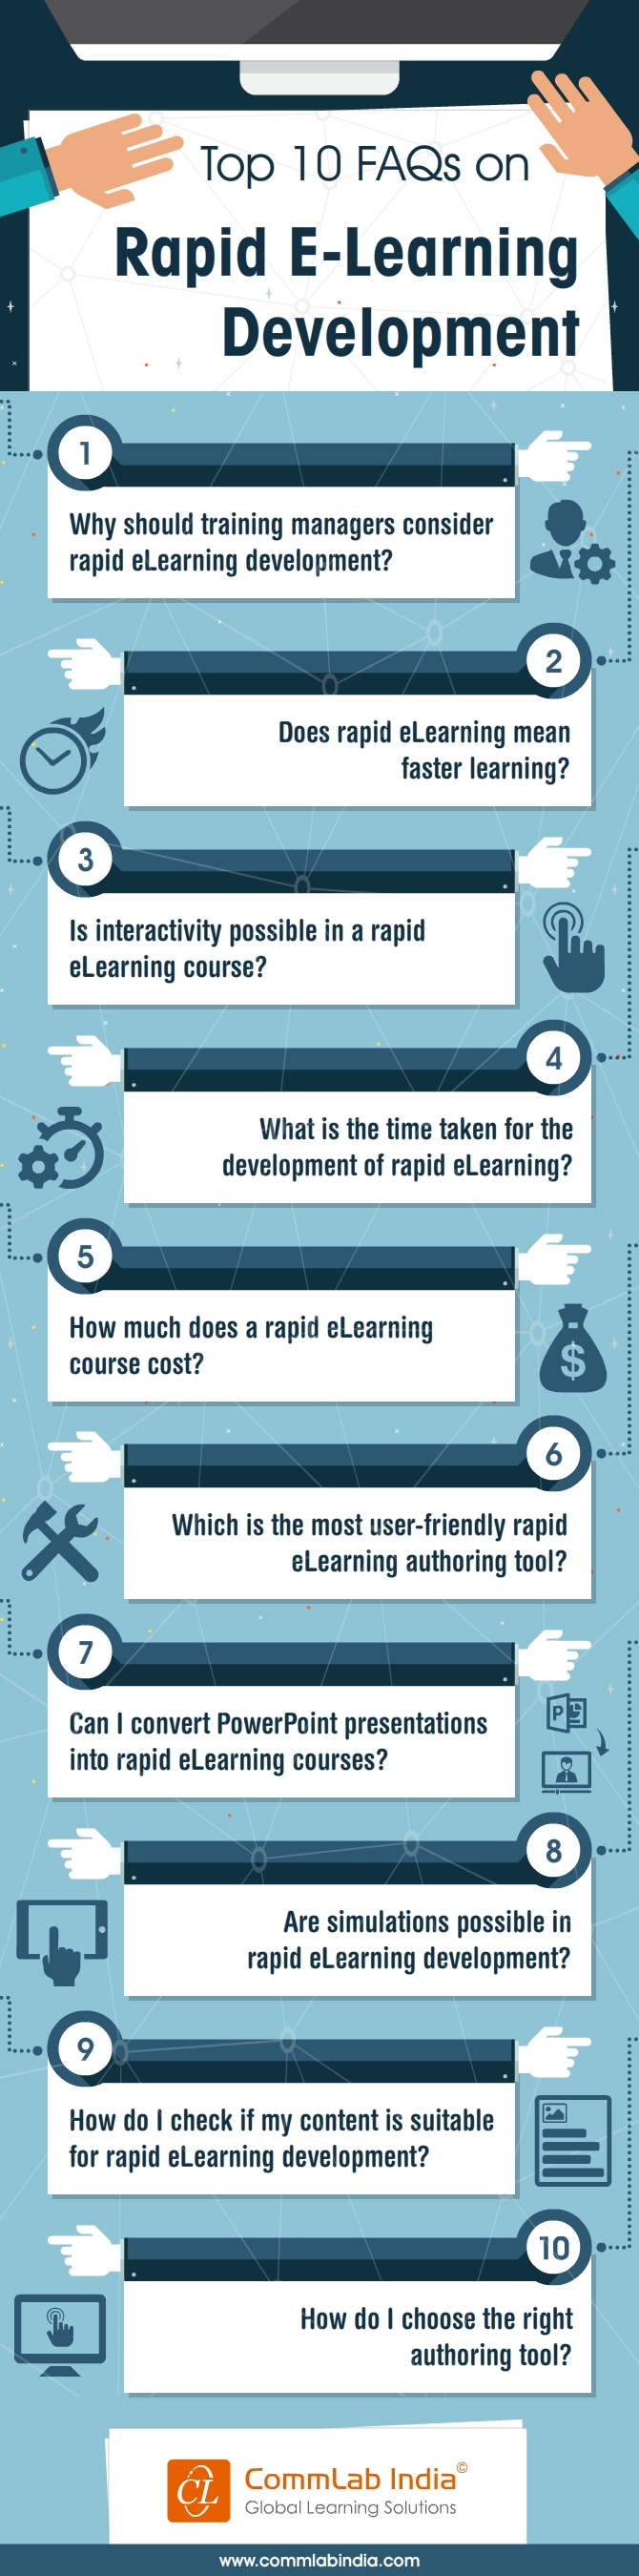 Top 10 FAQs on Rapid E-Learning Development [Infographic]